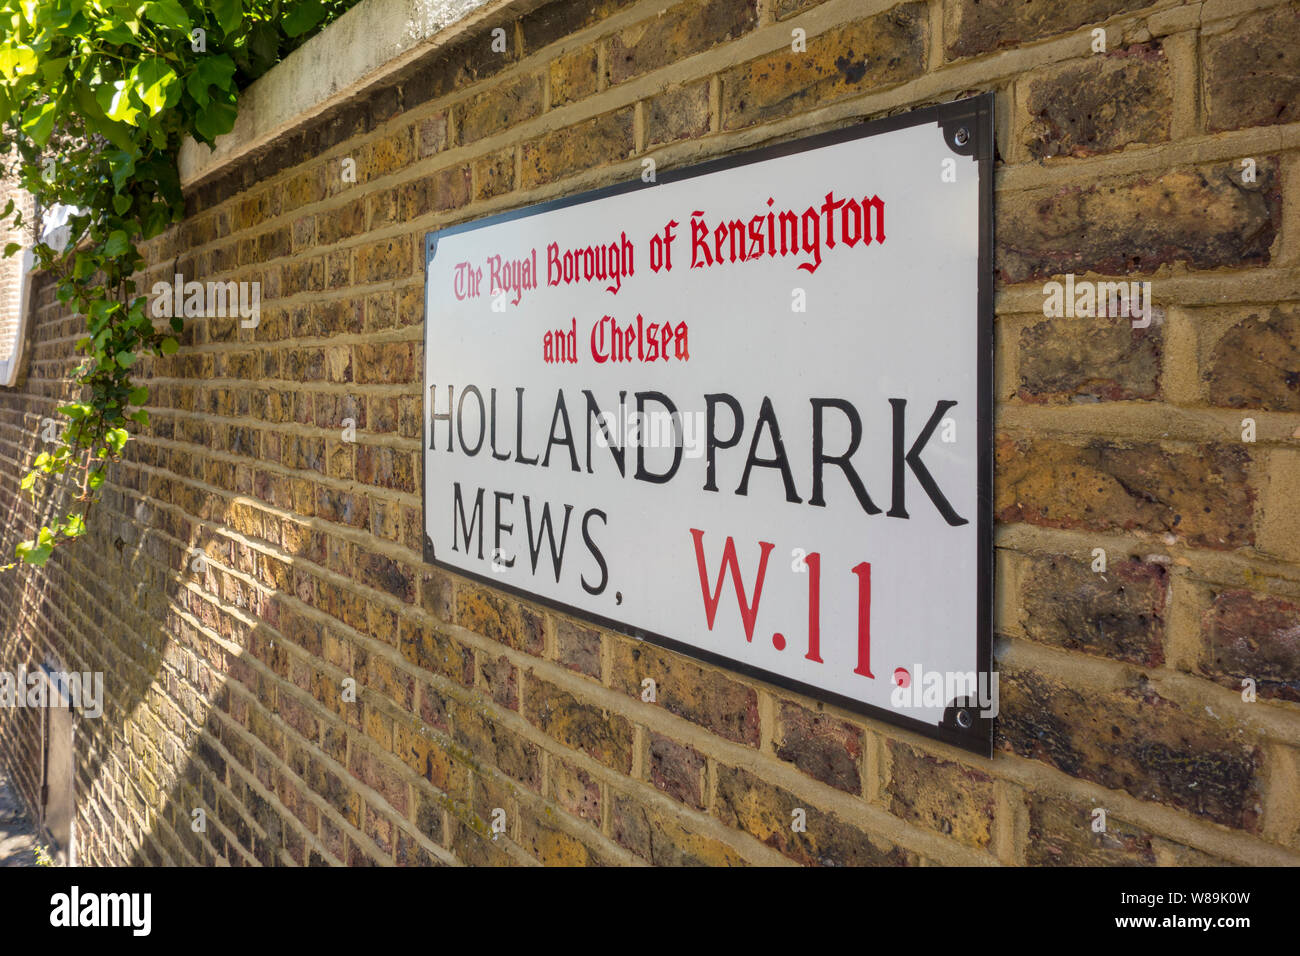 Holland Park Mews, Royal Borough of Kensington and Chelsea, London, UK Stock Photo